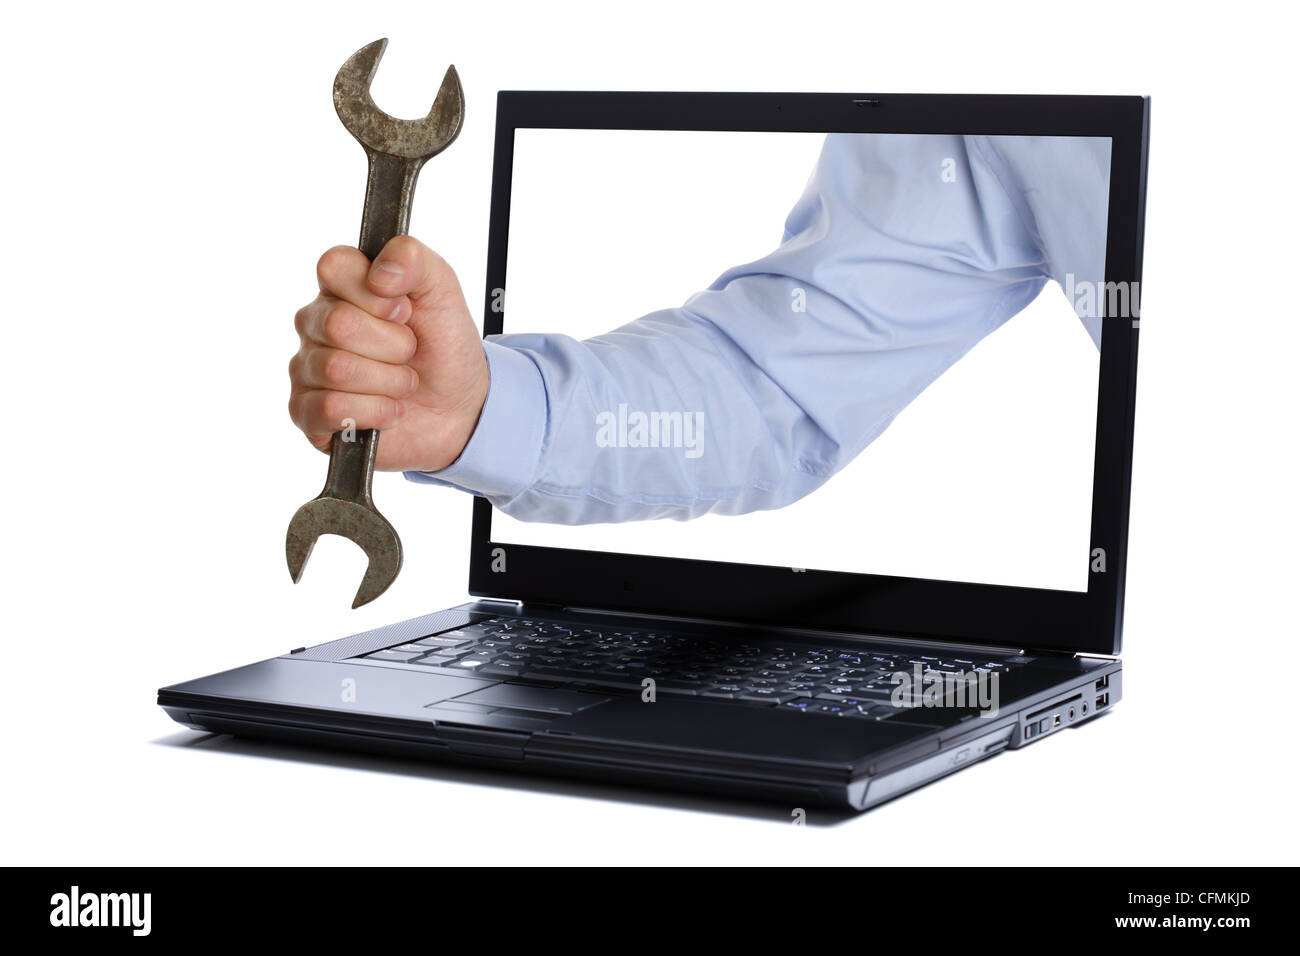 IT support engineer - Stock Image